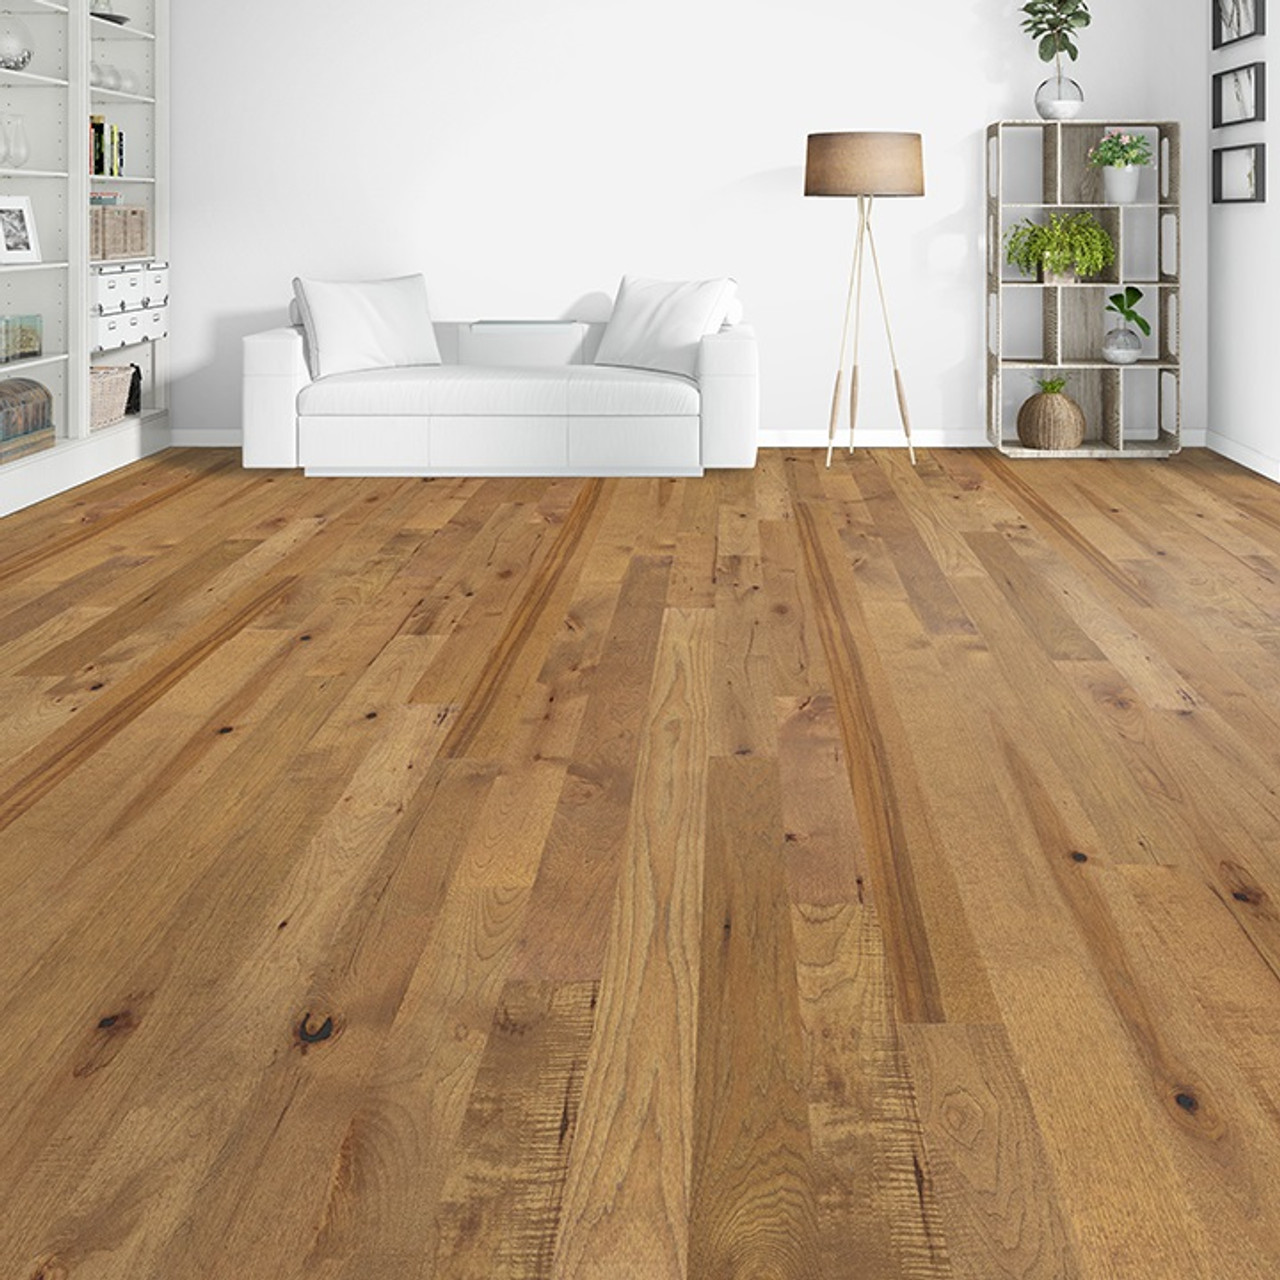 Buy Floors For Life Flint River Engineered Hardwood At Georgia Carpet